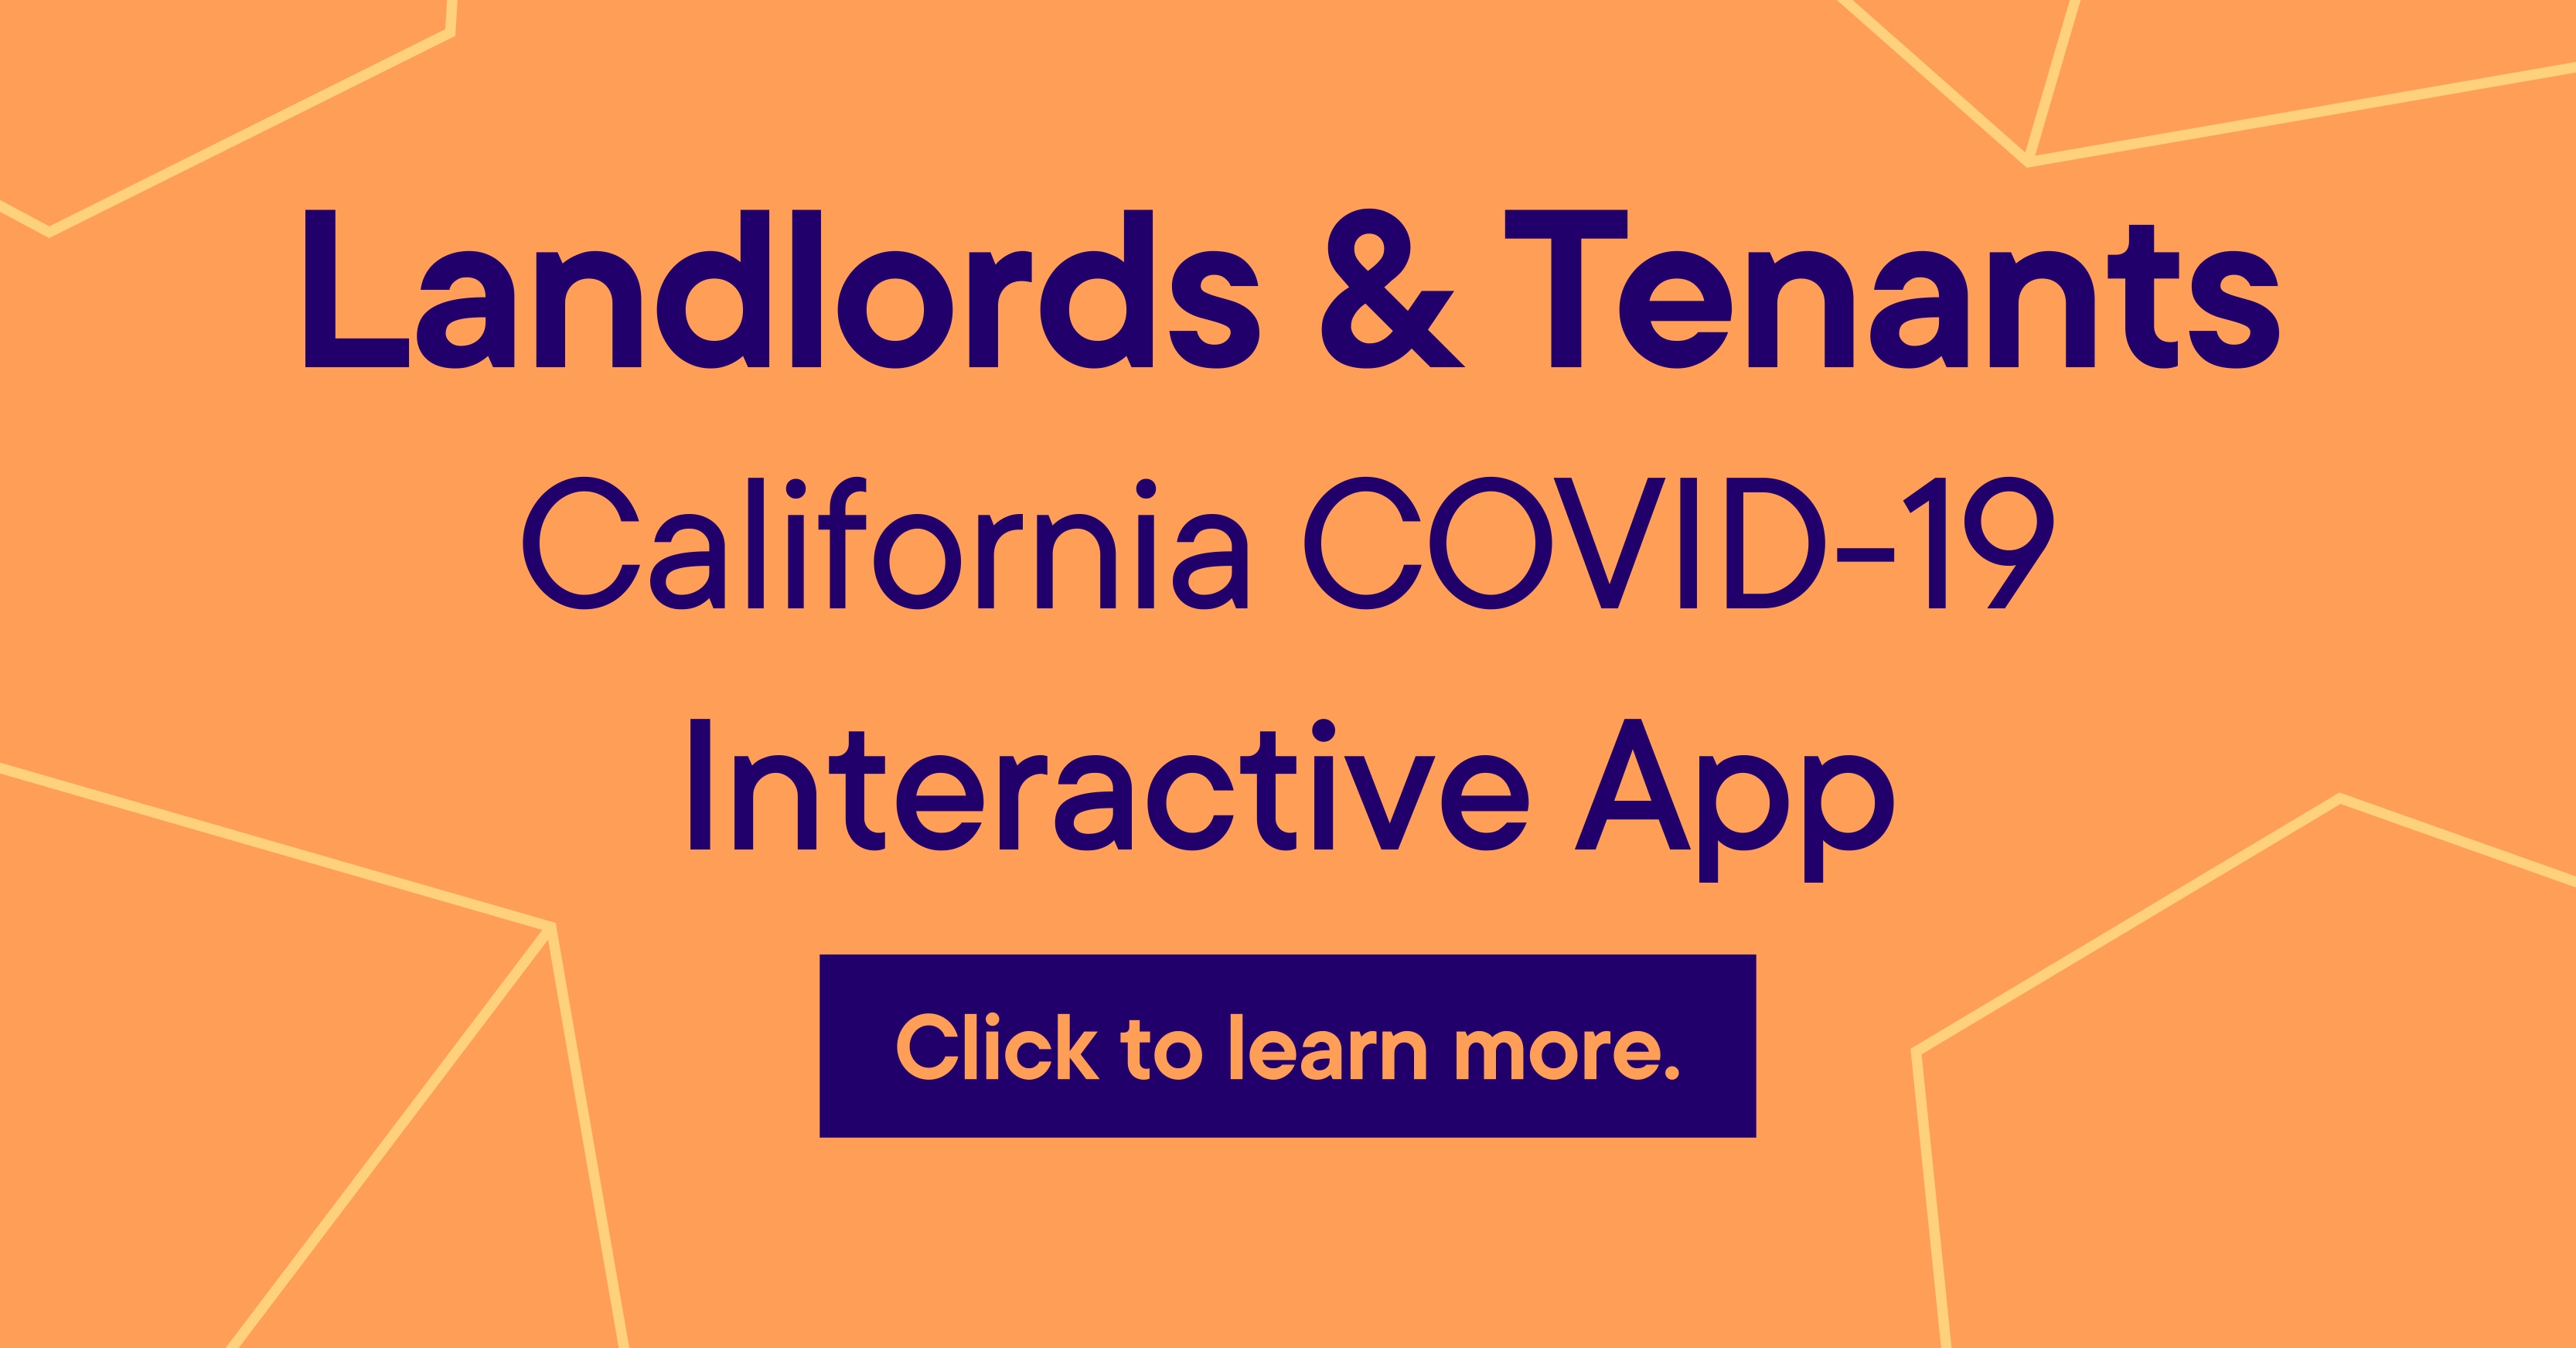 Landlords & Tenants - California COVID-19 Interactive App - Click to learn more